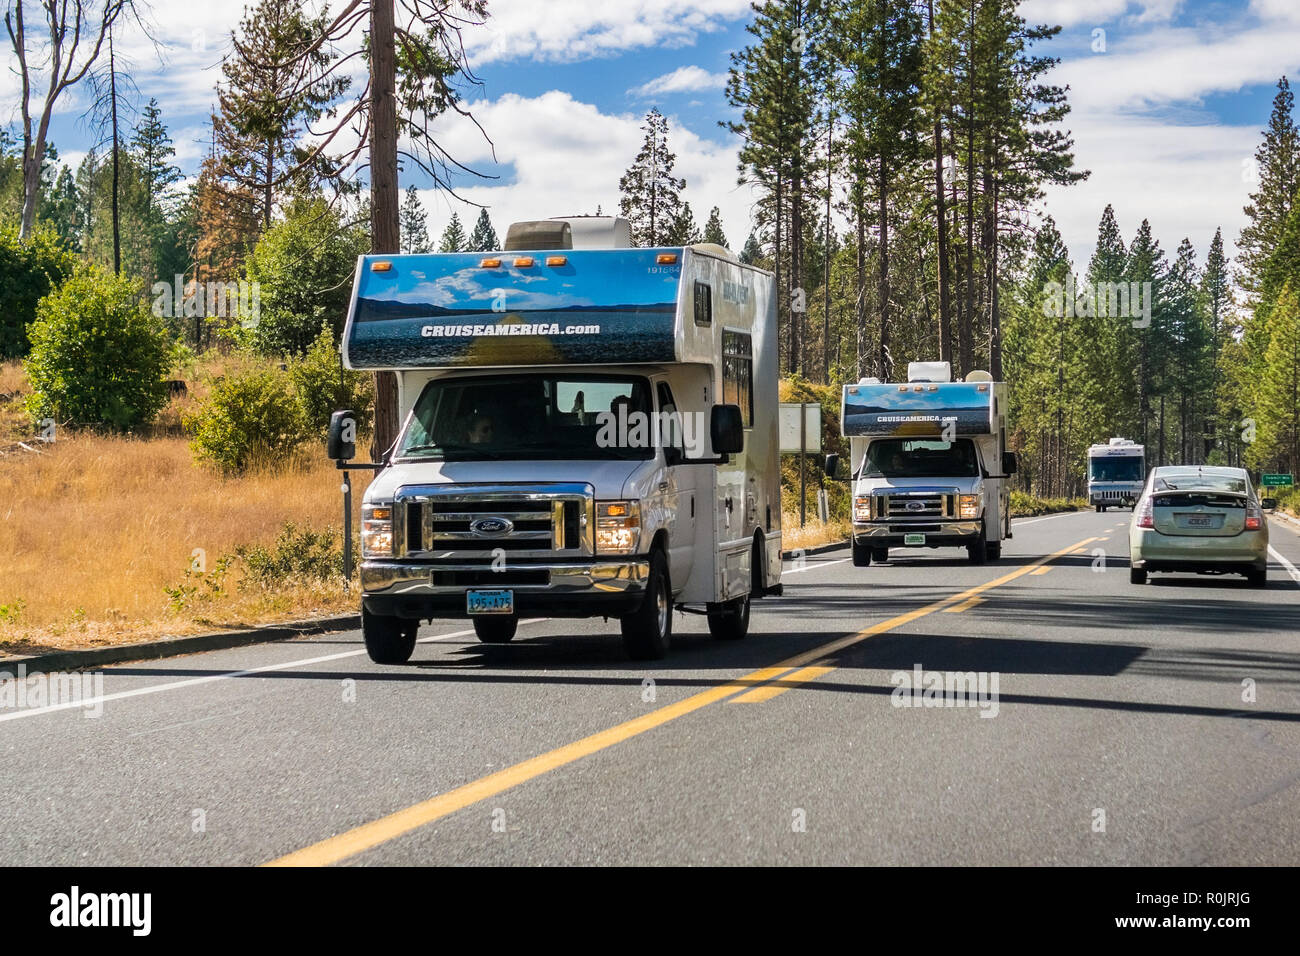 Rv For Rent Stock Photos Amp Rv For Rent Stock Images Alamy